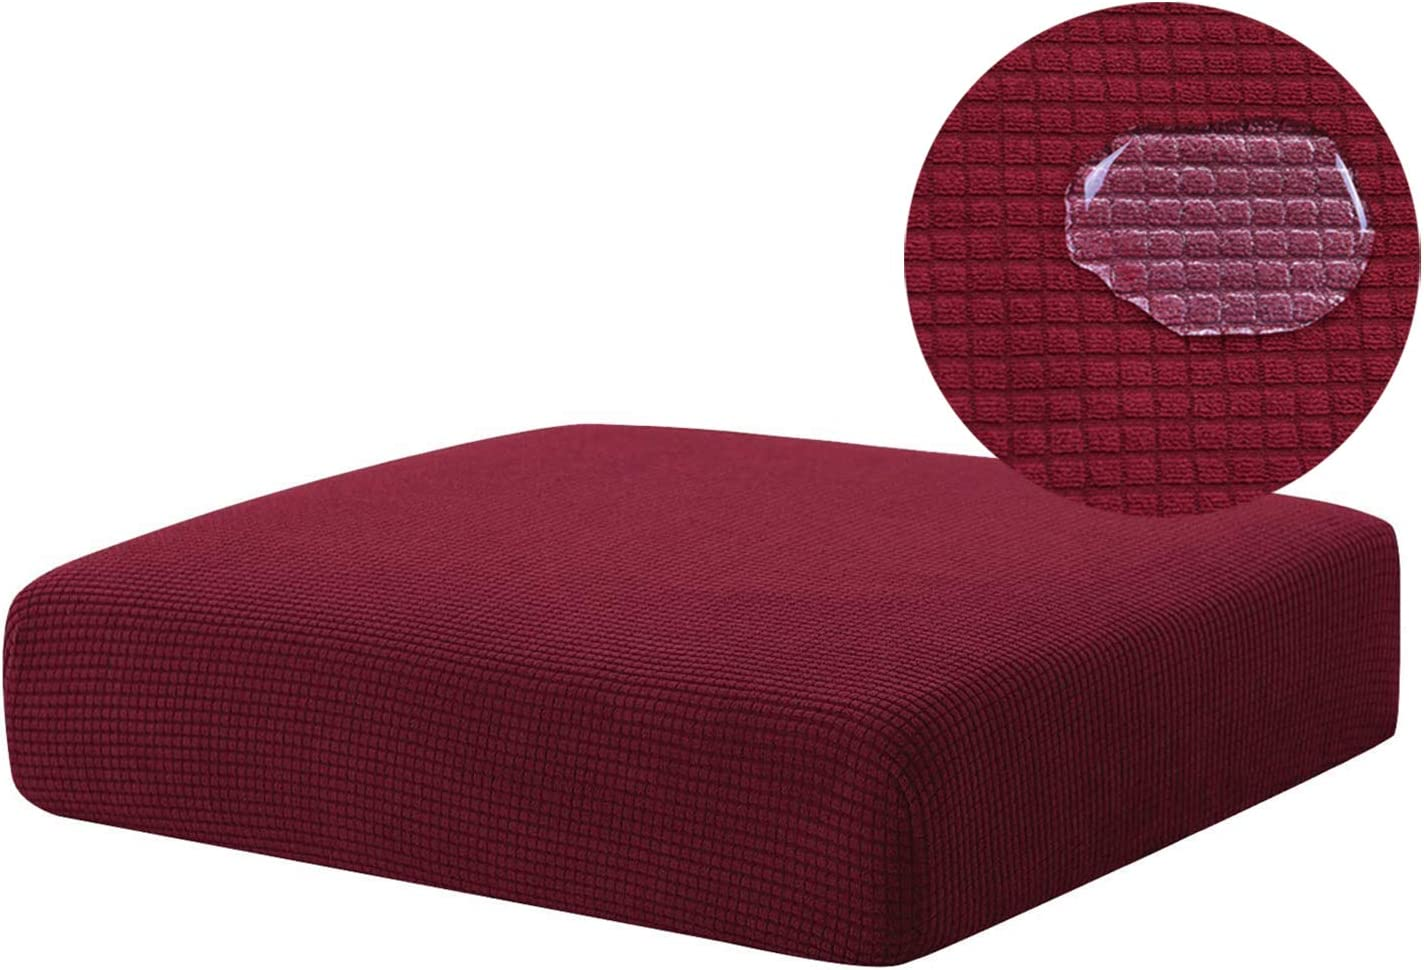 NC HOME Stretch Water Repellent Sofa Cushion Slipcover Sofa Seat Covers Furniture Protector, Non Slip Armchair Slipcover (Chair Cushion, Wine)